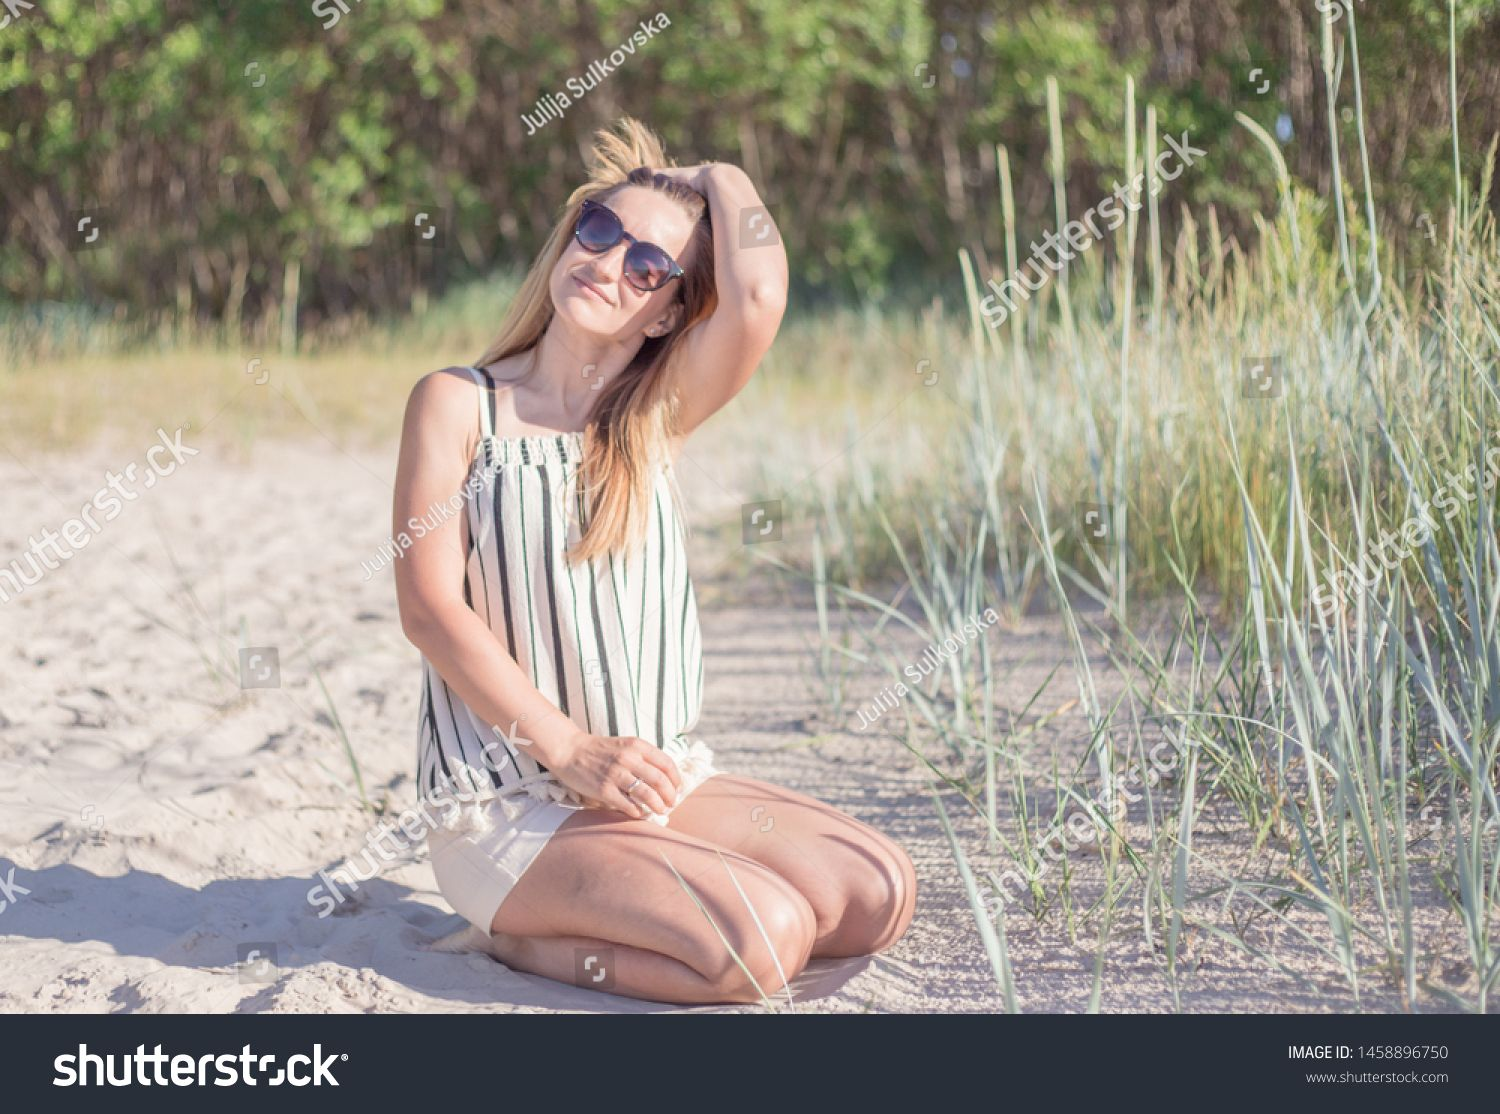 Portrait of beautiful young woman posing on the beach. Female fashion model posing atthe coast.Stylish woman at the summer beach in a hot day. #Sponsored , #AD, #posing#beach#Female#woman